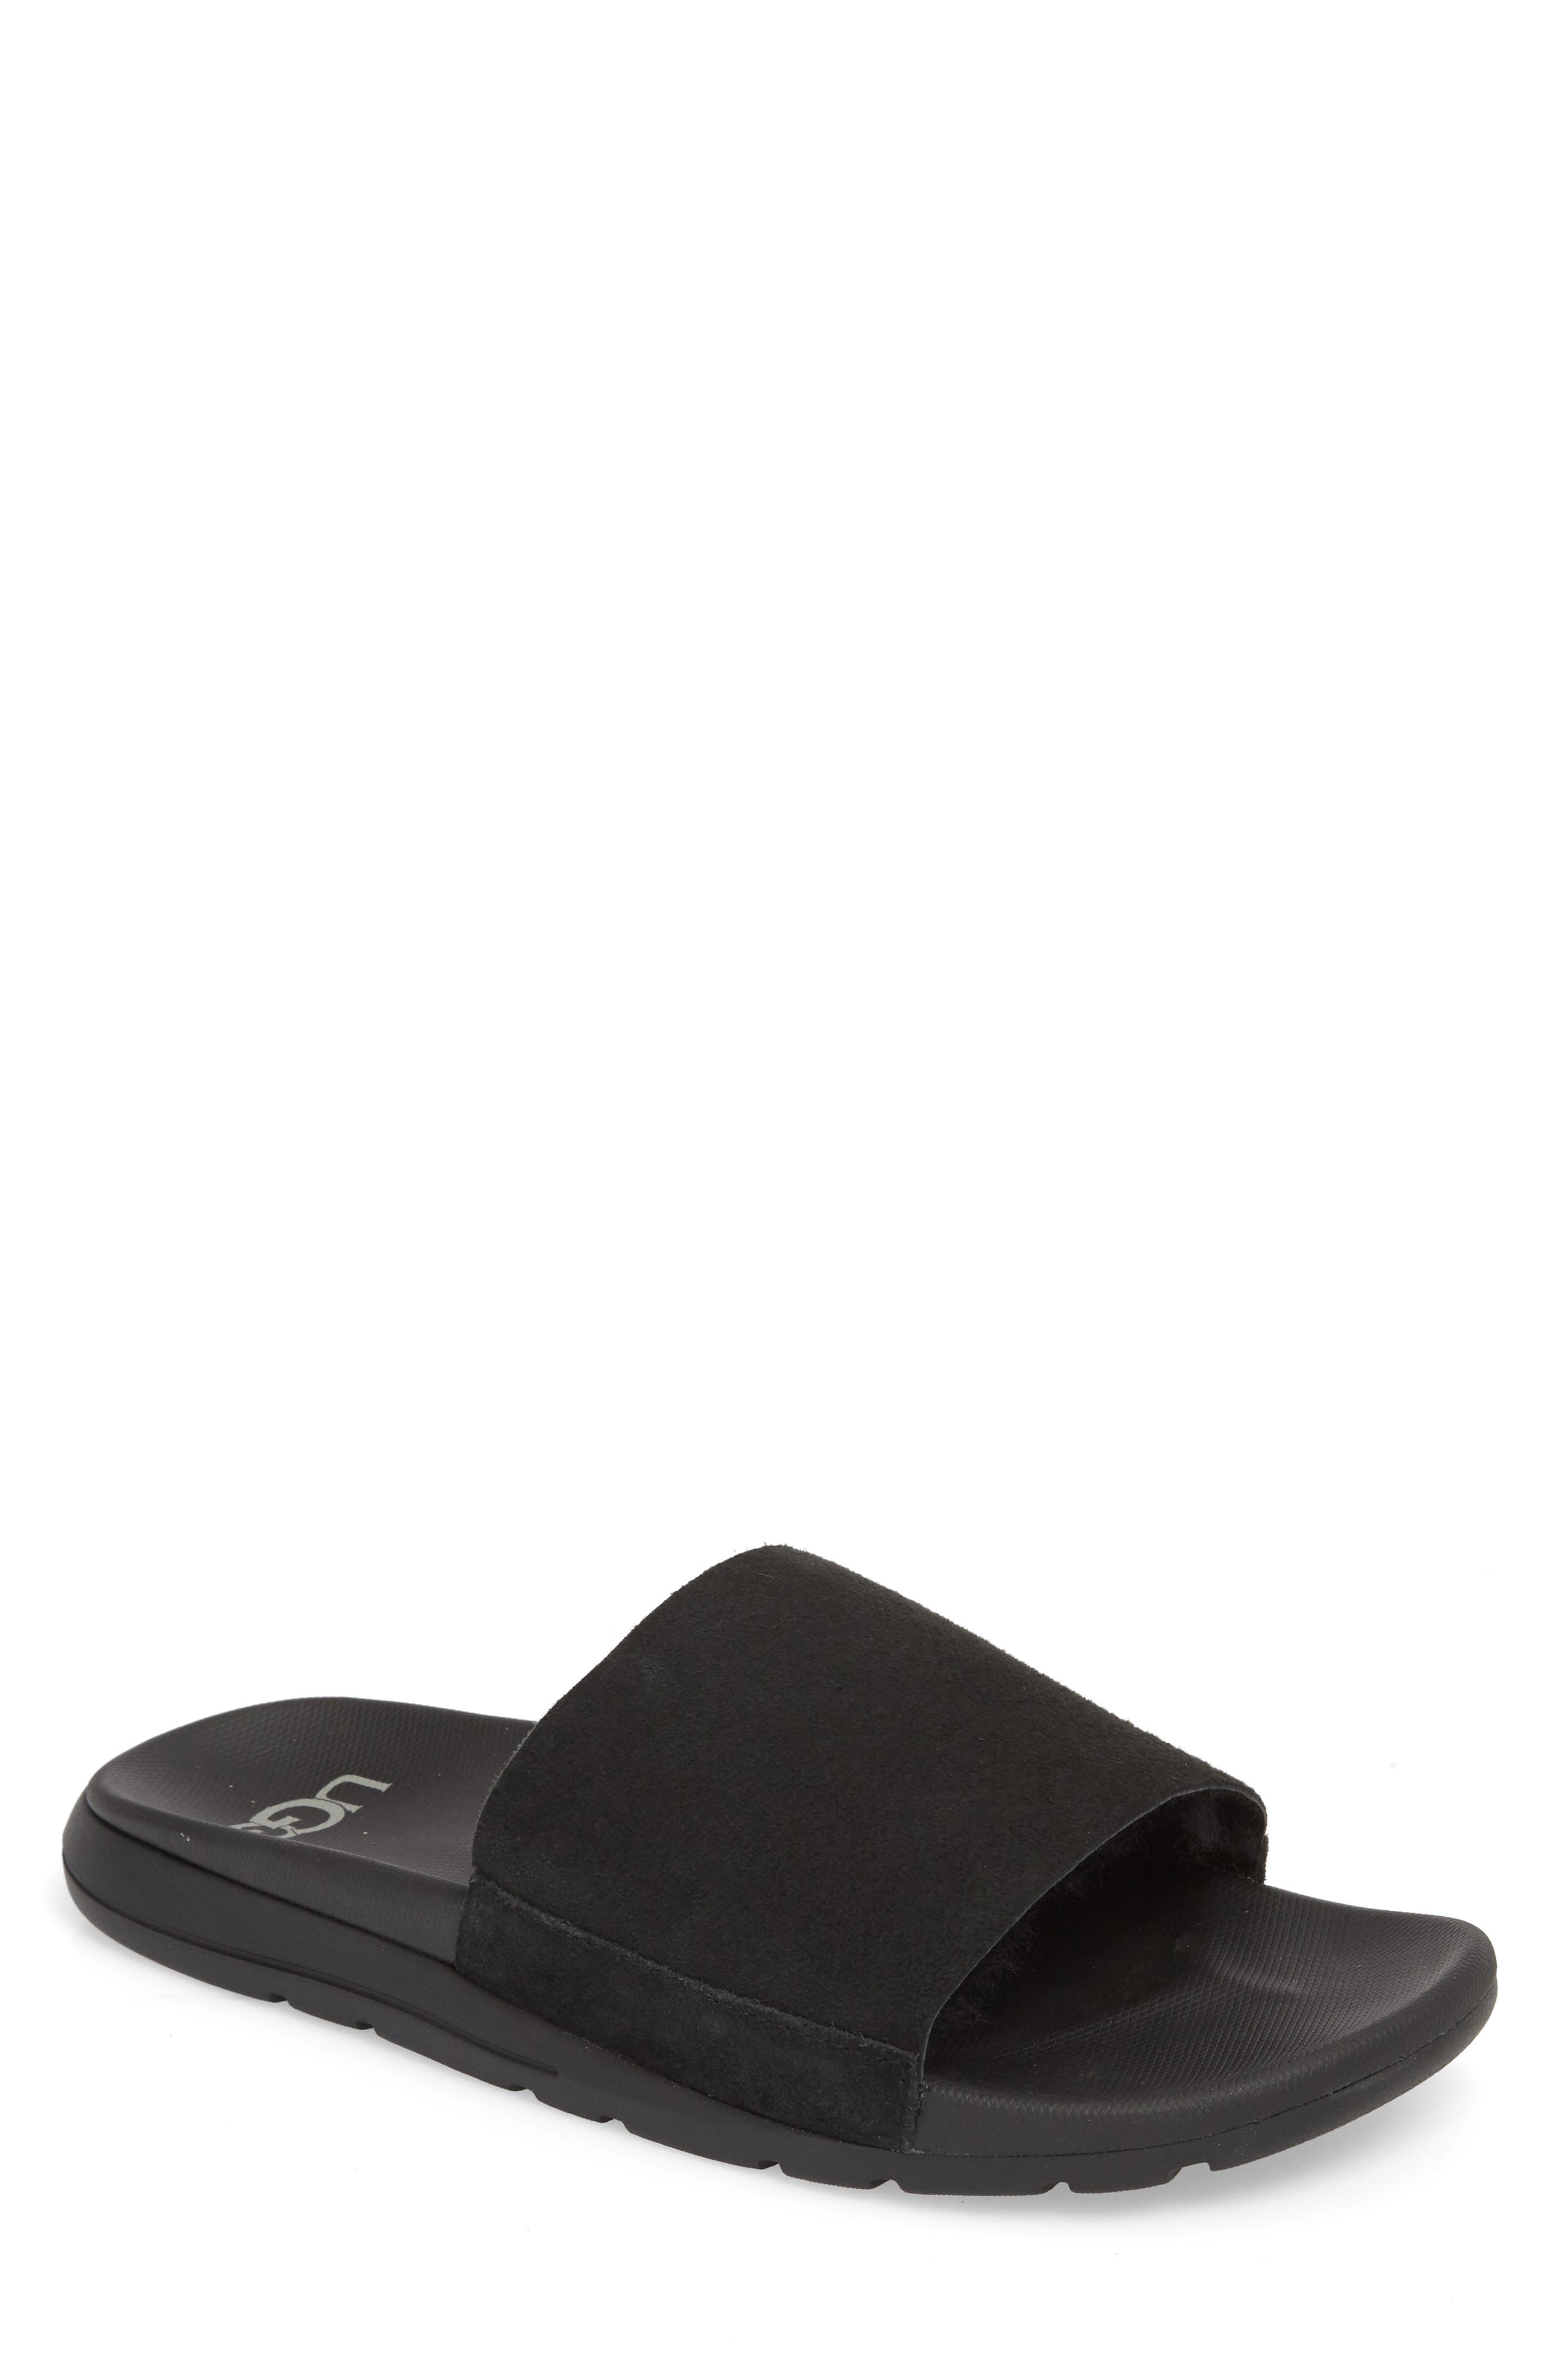 Xavier TF Genuine Shearling Slide Sandal,                             Main thumbnail 1, color,                             BLACK